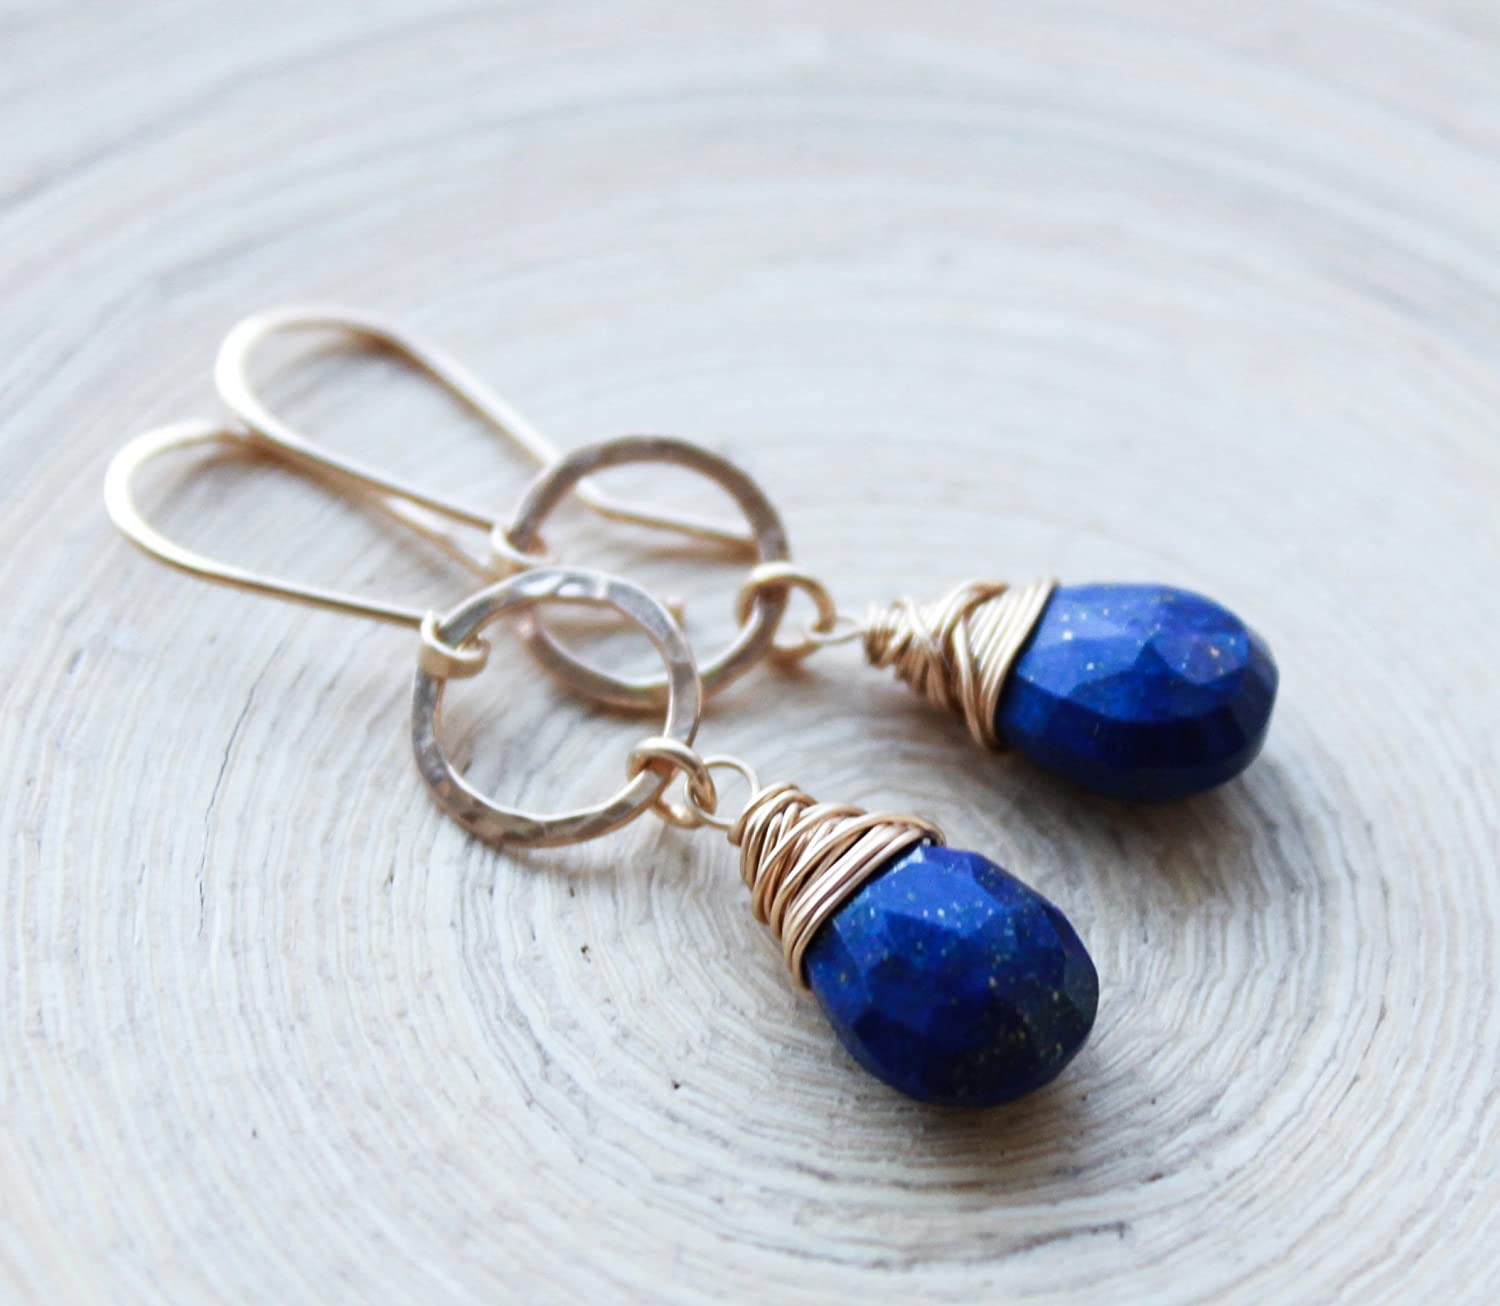 Wedding Bridal December Birthstone 9th anniversary Natural Lapis Lazuli Wire Wrapped Earrings in Solid Sterling Silver Healing